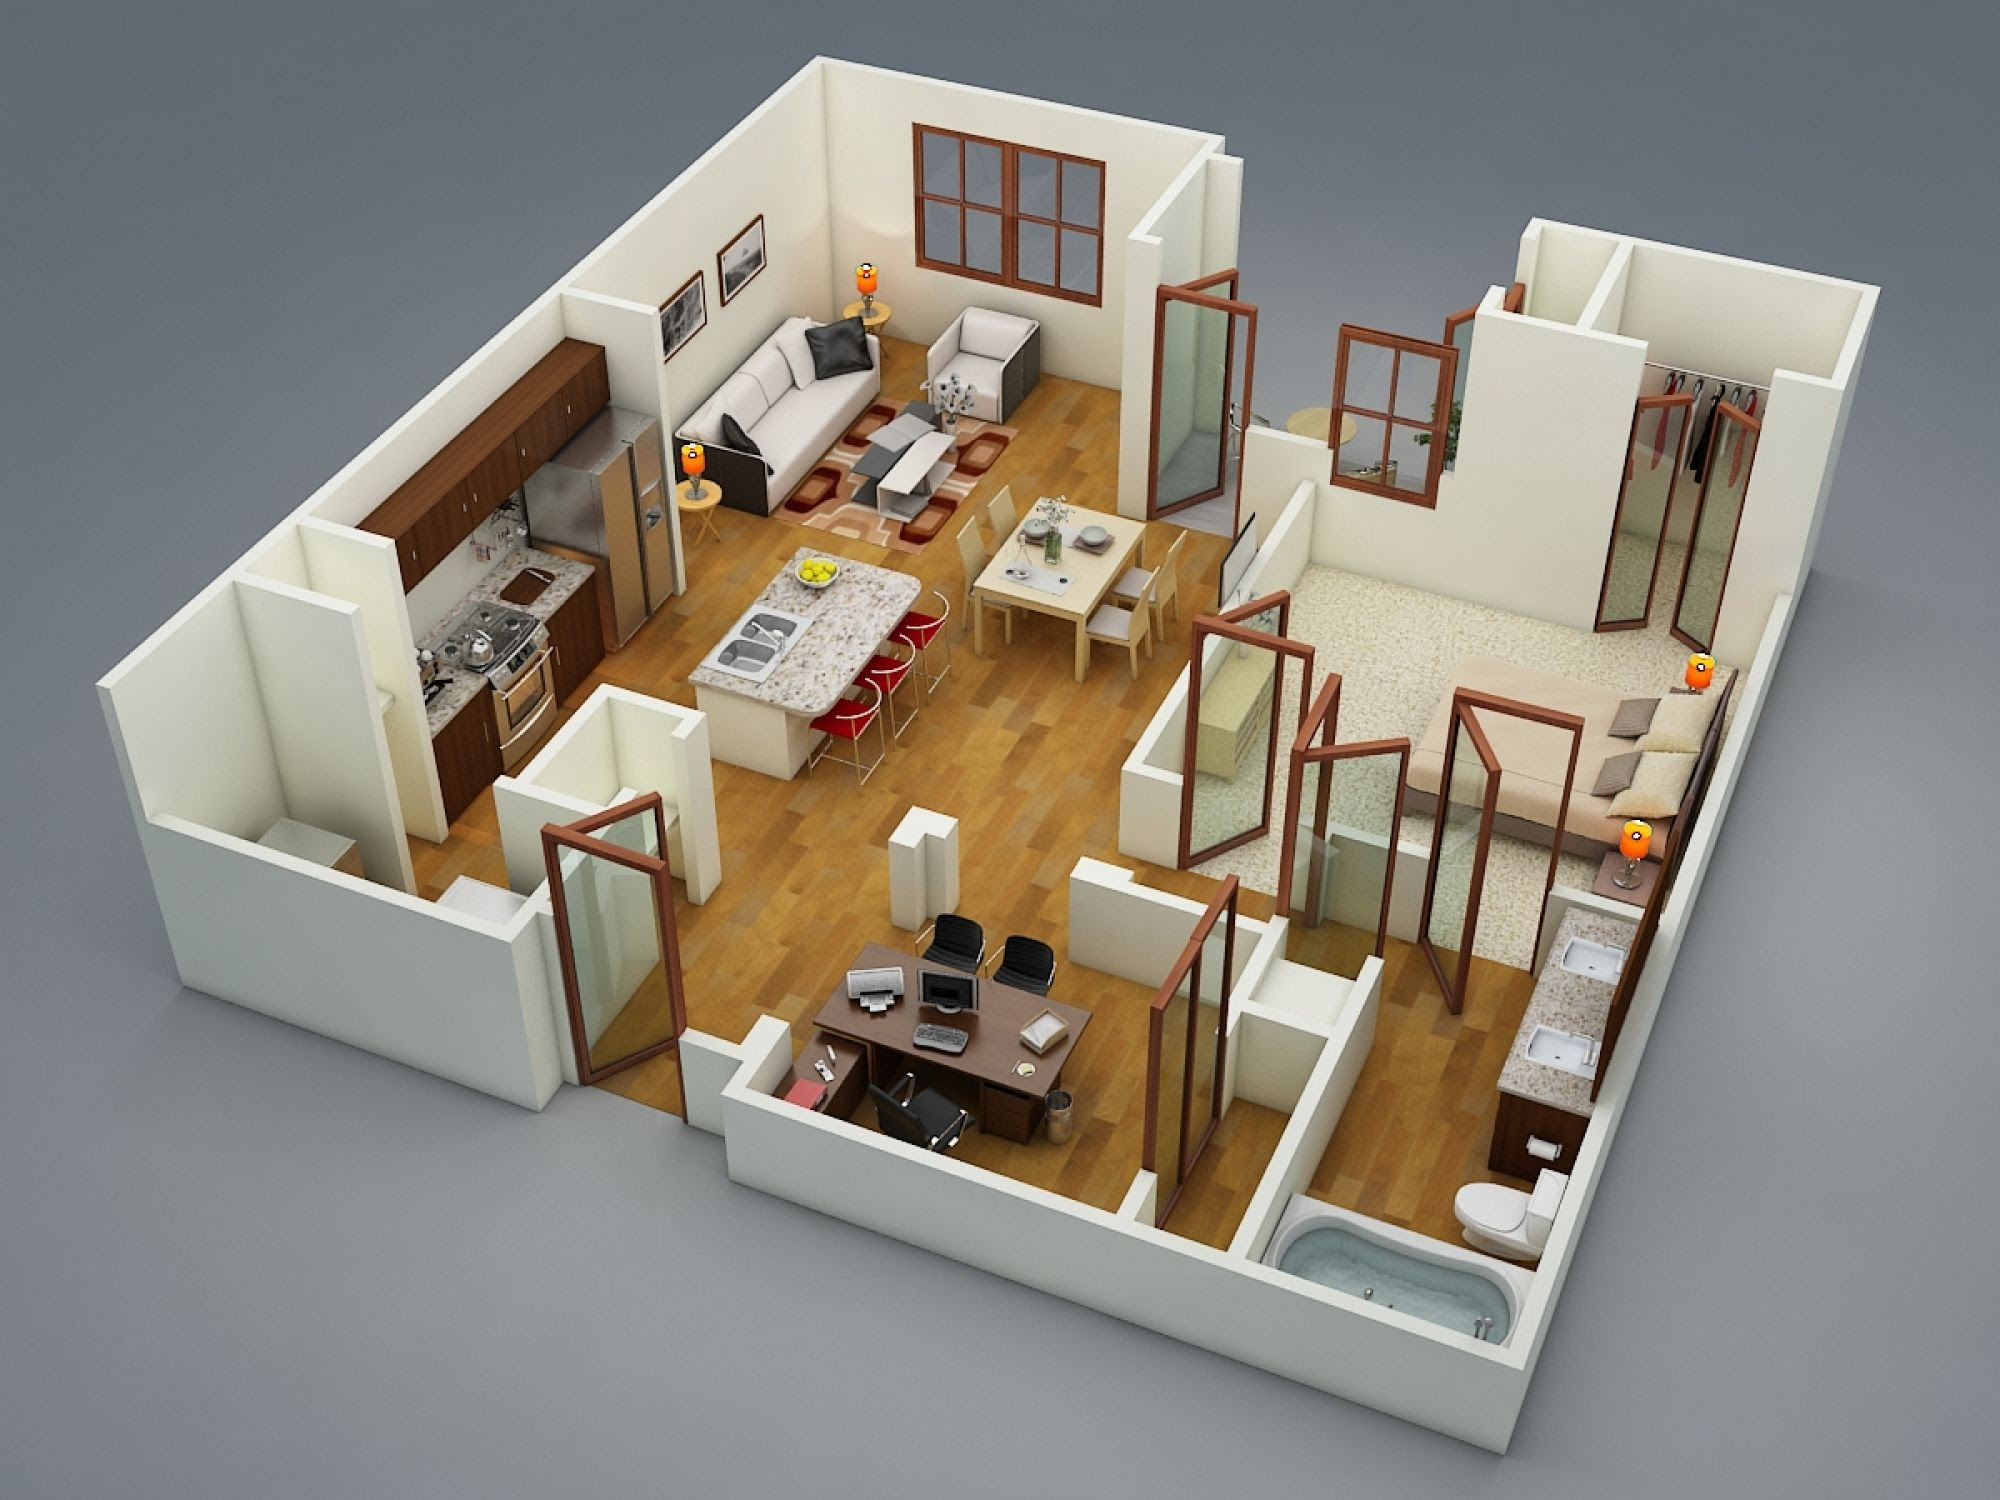 22 Bedroom Apartment/House Plans